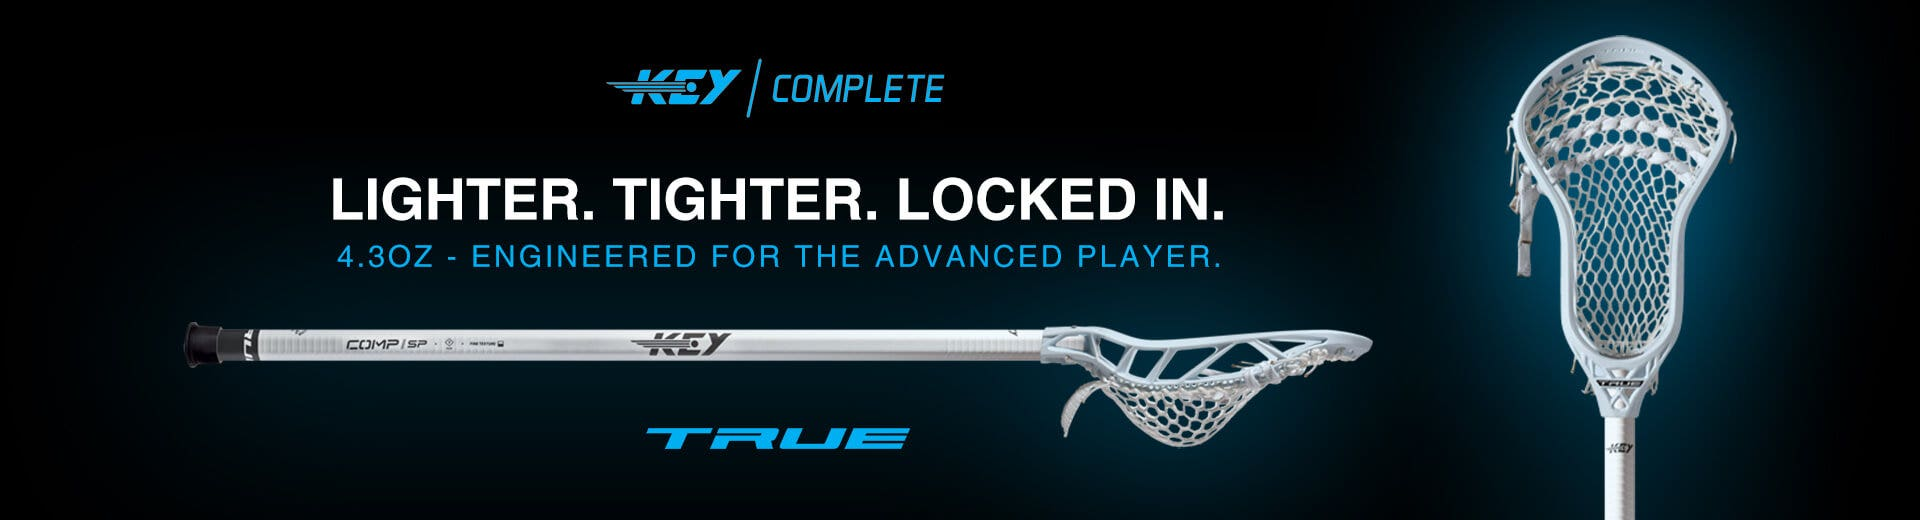 TRUE Key Complete Stick - DESKTOP